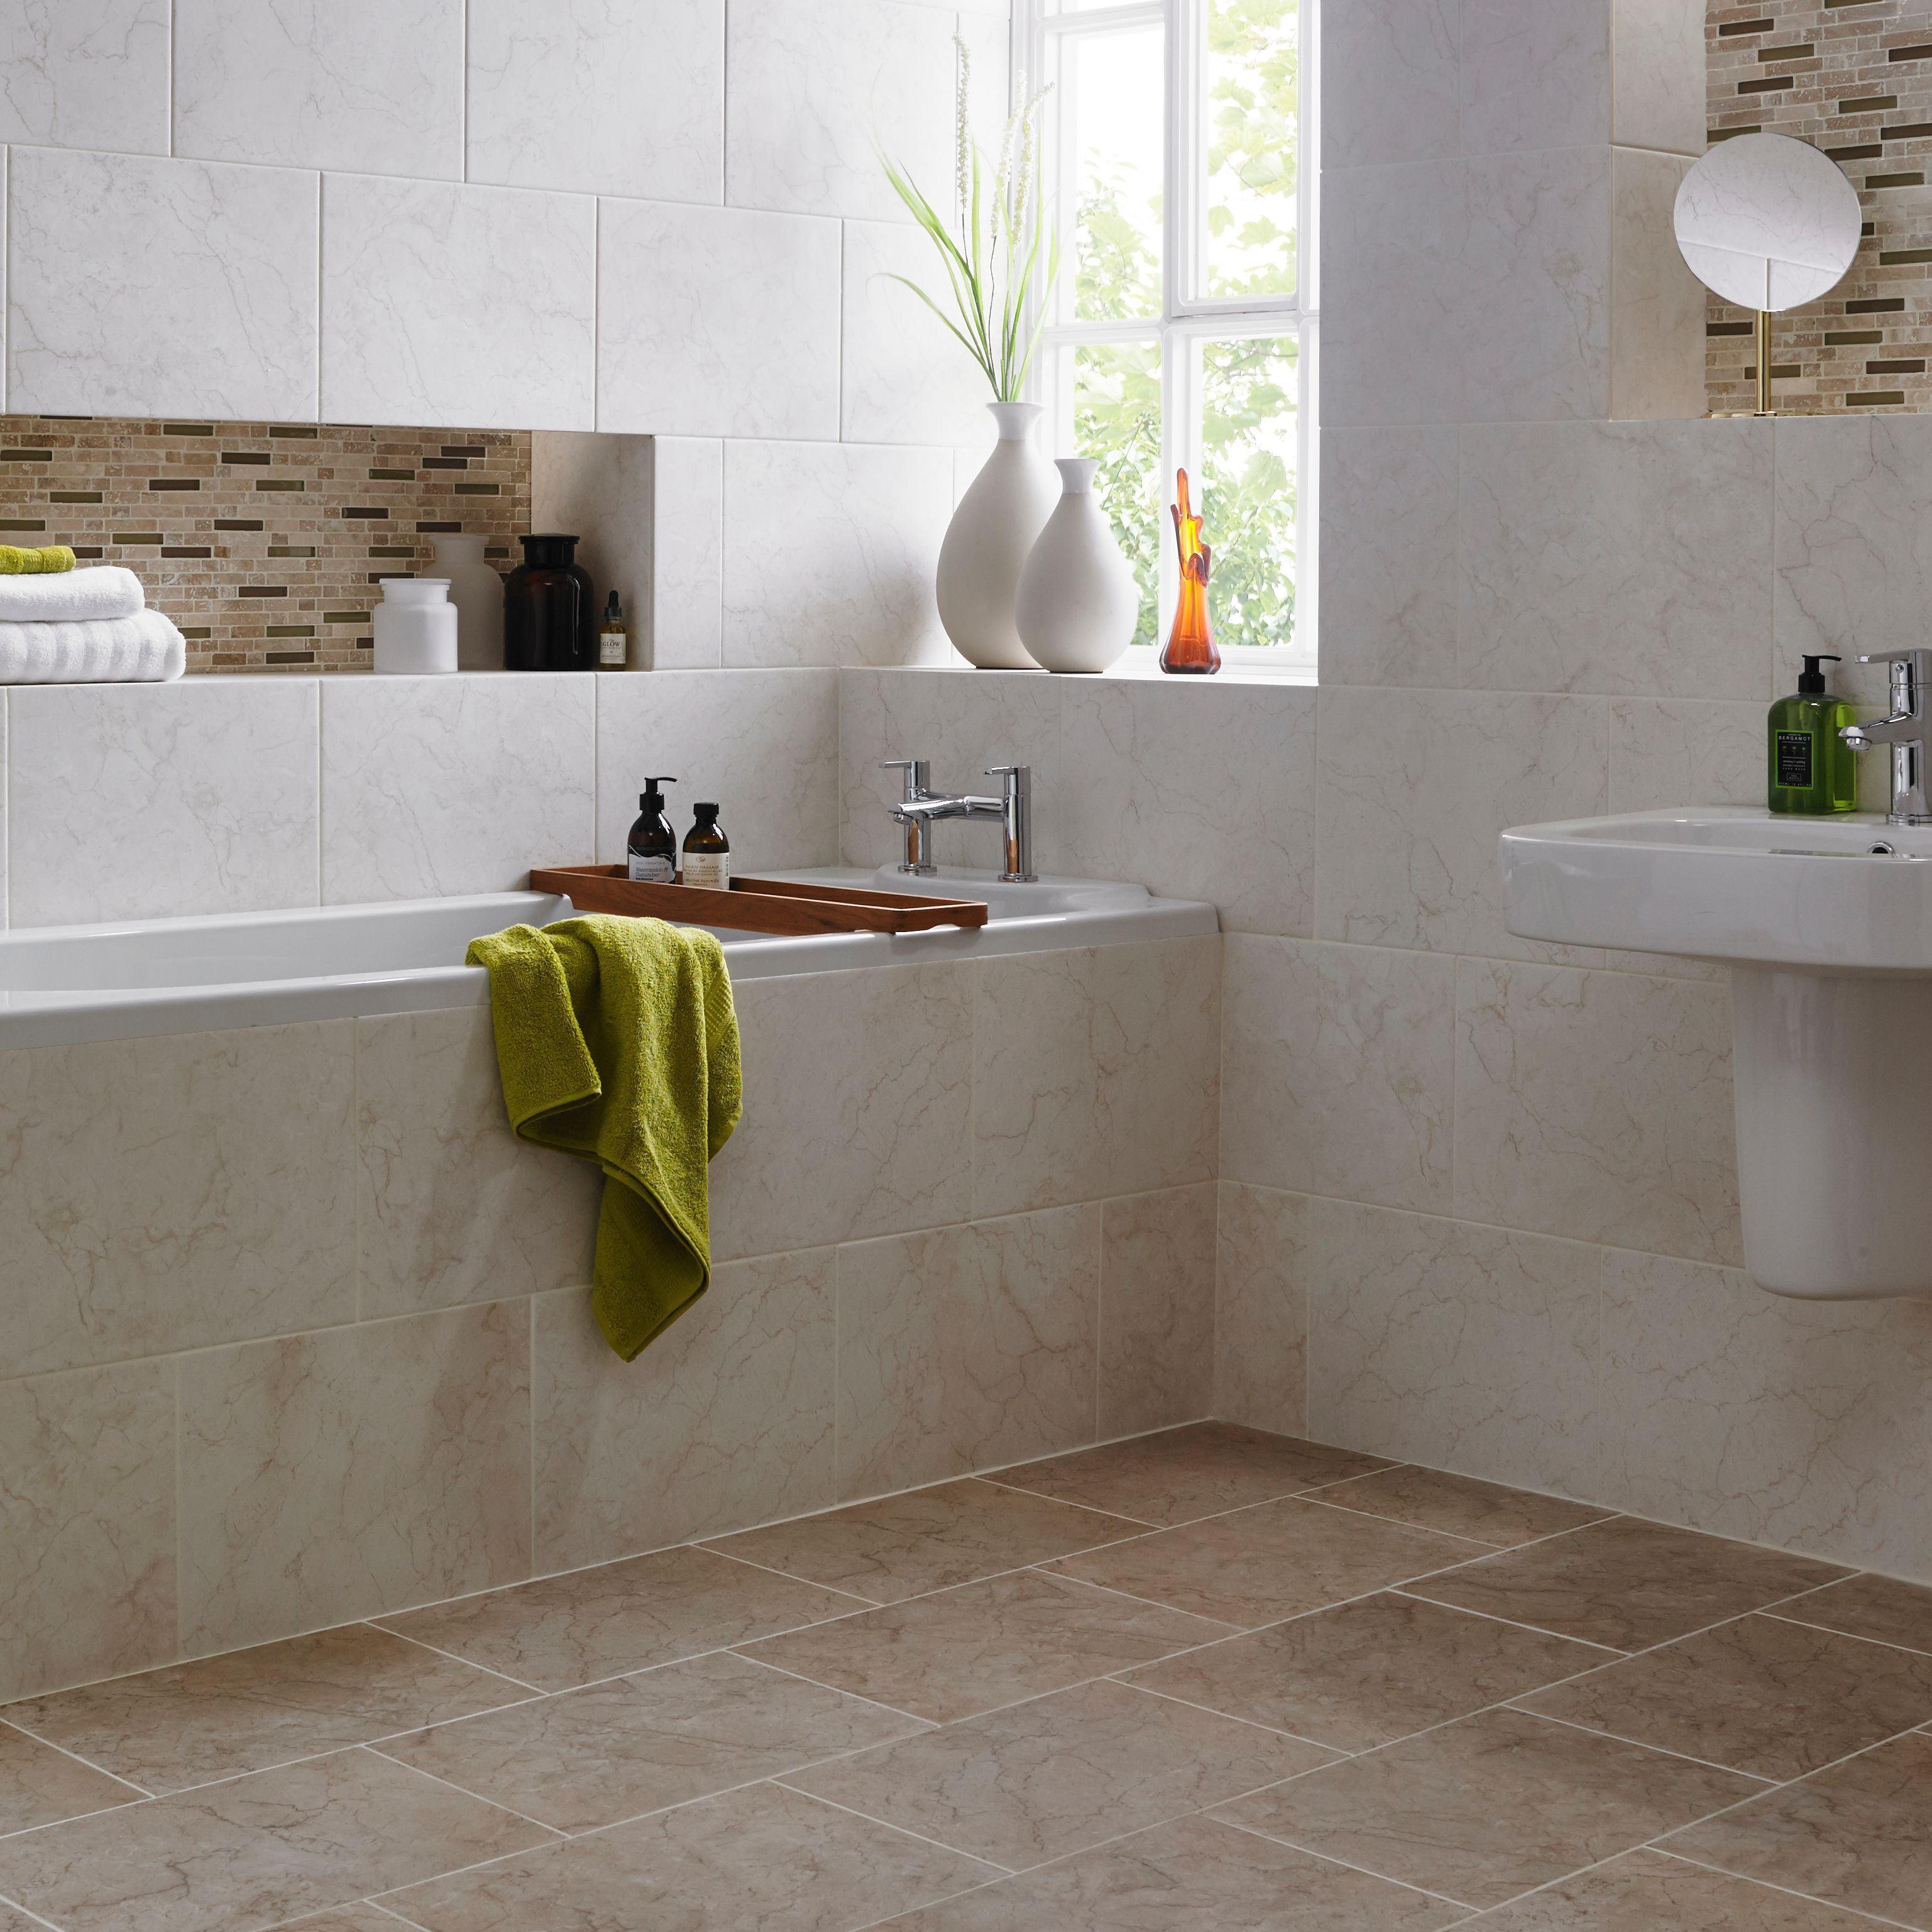 Illusion mocha floor tiles the ground beneath her feet savino earth marble effect ceramic wall floor tile pack of 8 l ppazfo